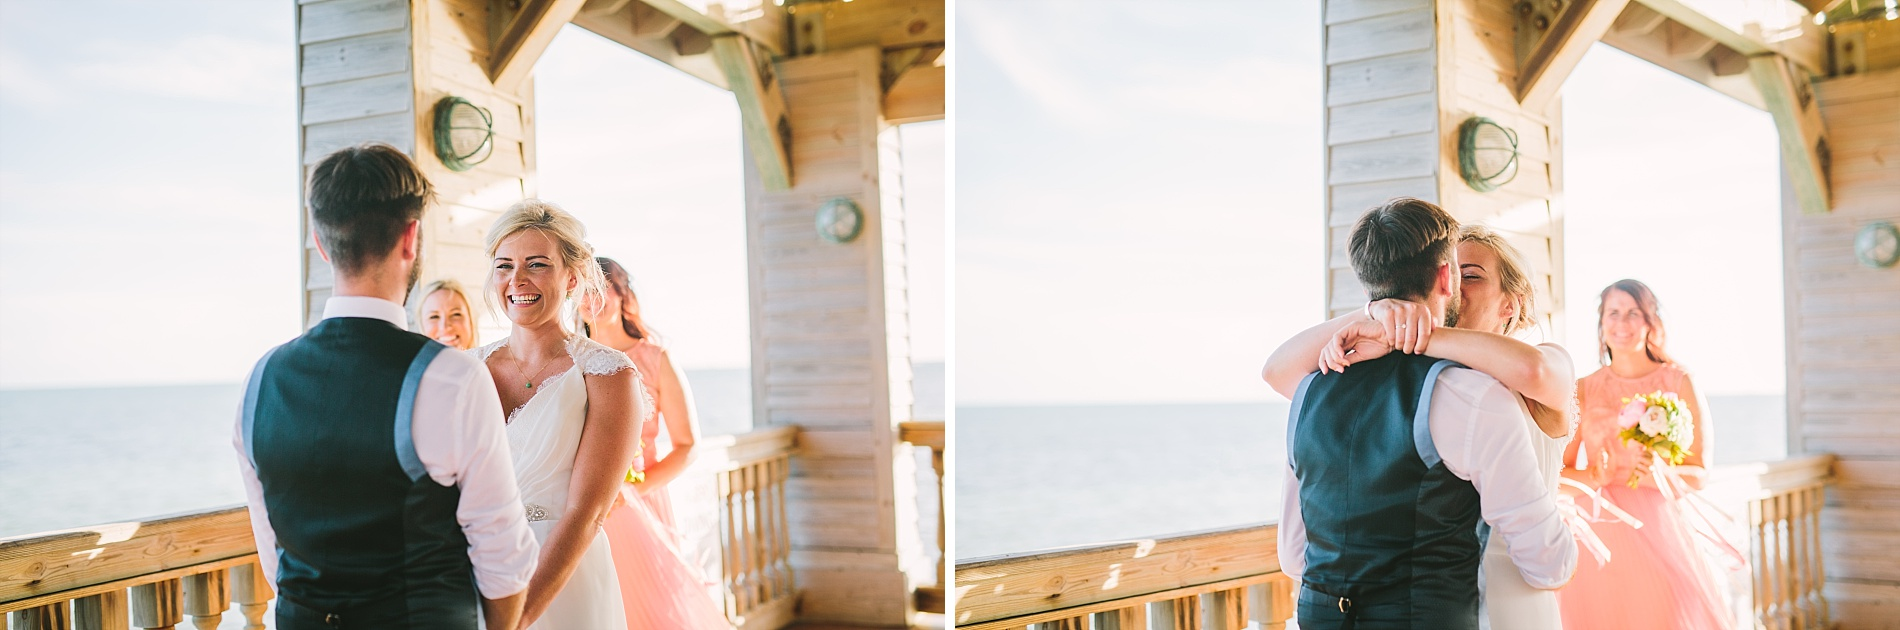 key west wedding photography 038